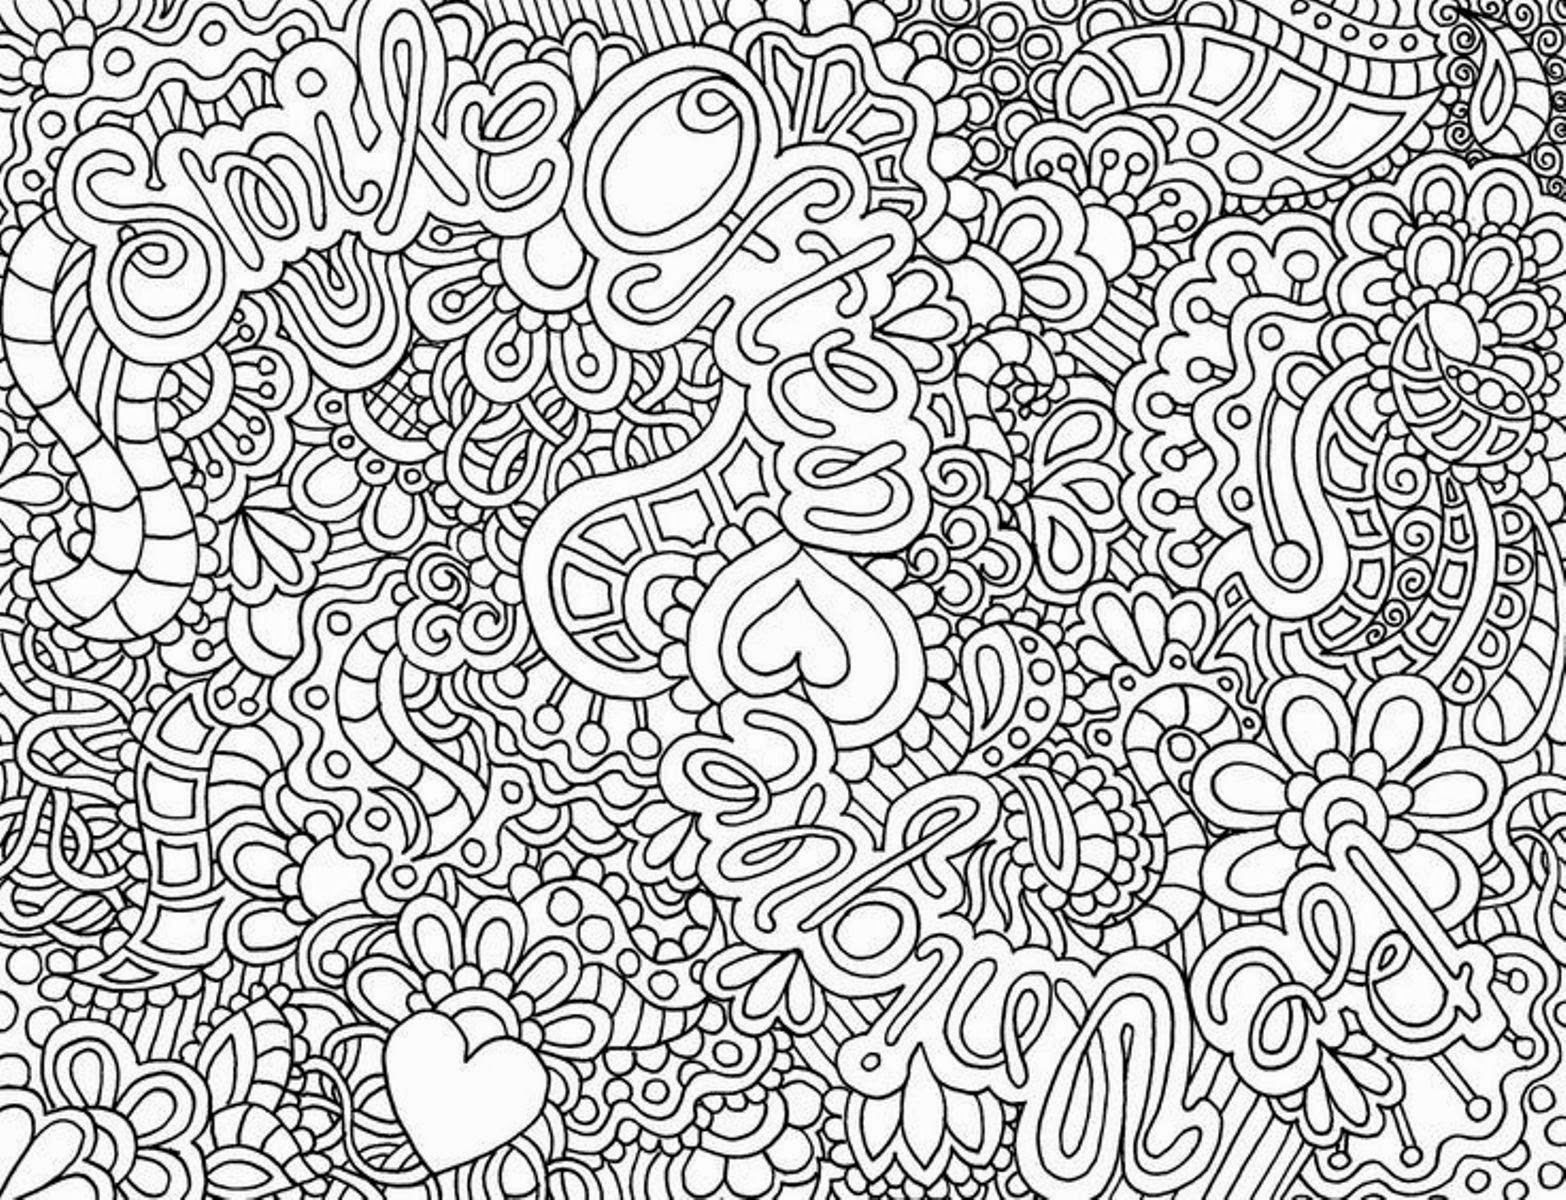 coloring pages difficult but fun coloring pages free and printable coloring sheets 0 - Fun Colouring Sheets